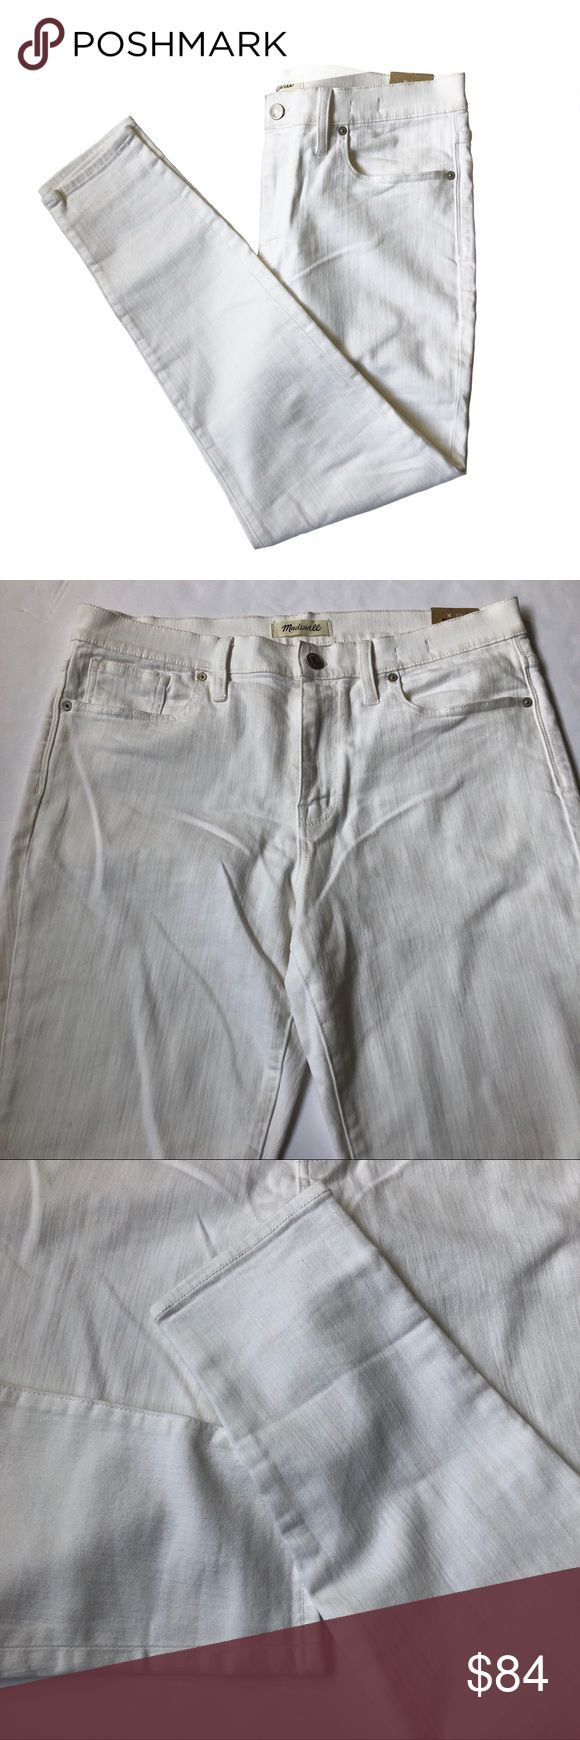 """Madewell 9"""" High-Rise White Skinny Jeans Size 32 New with tags, never worn. Size 32.   Lean and sexy with a 9"""" rise (right in '70s rock-muse territory), this one's legs-for-days look and supersleek effect come from using some of the best denim in the world.   91% cotton/7% poly/2% elastane denim Specially woven to counteract the whole show-through factor. Matte silver button, tonal stitching. Sit above hip, fitted through hip and thigh, with a slim leg. Front rise: 9 1/4""""; inseam: 28 1/2""""…"""